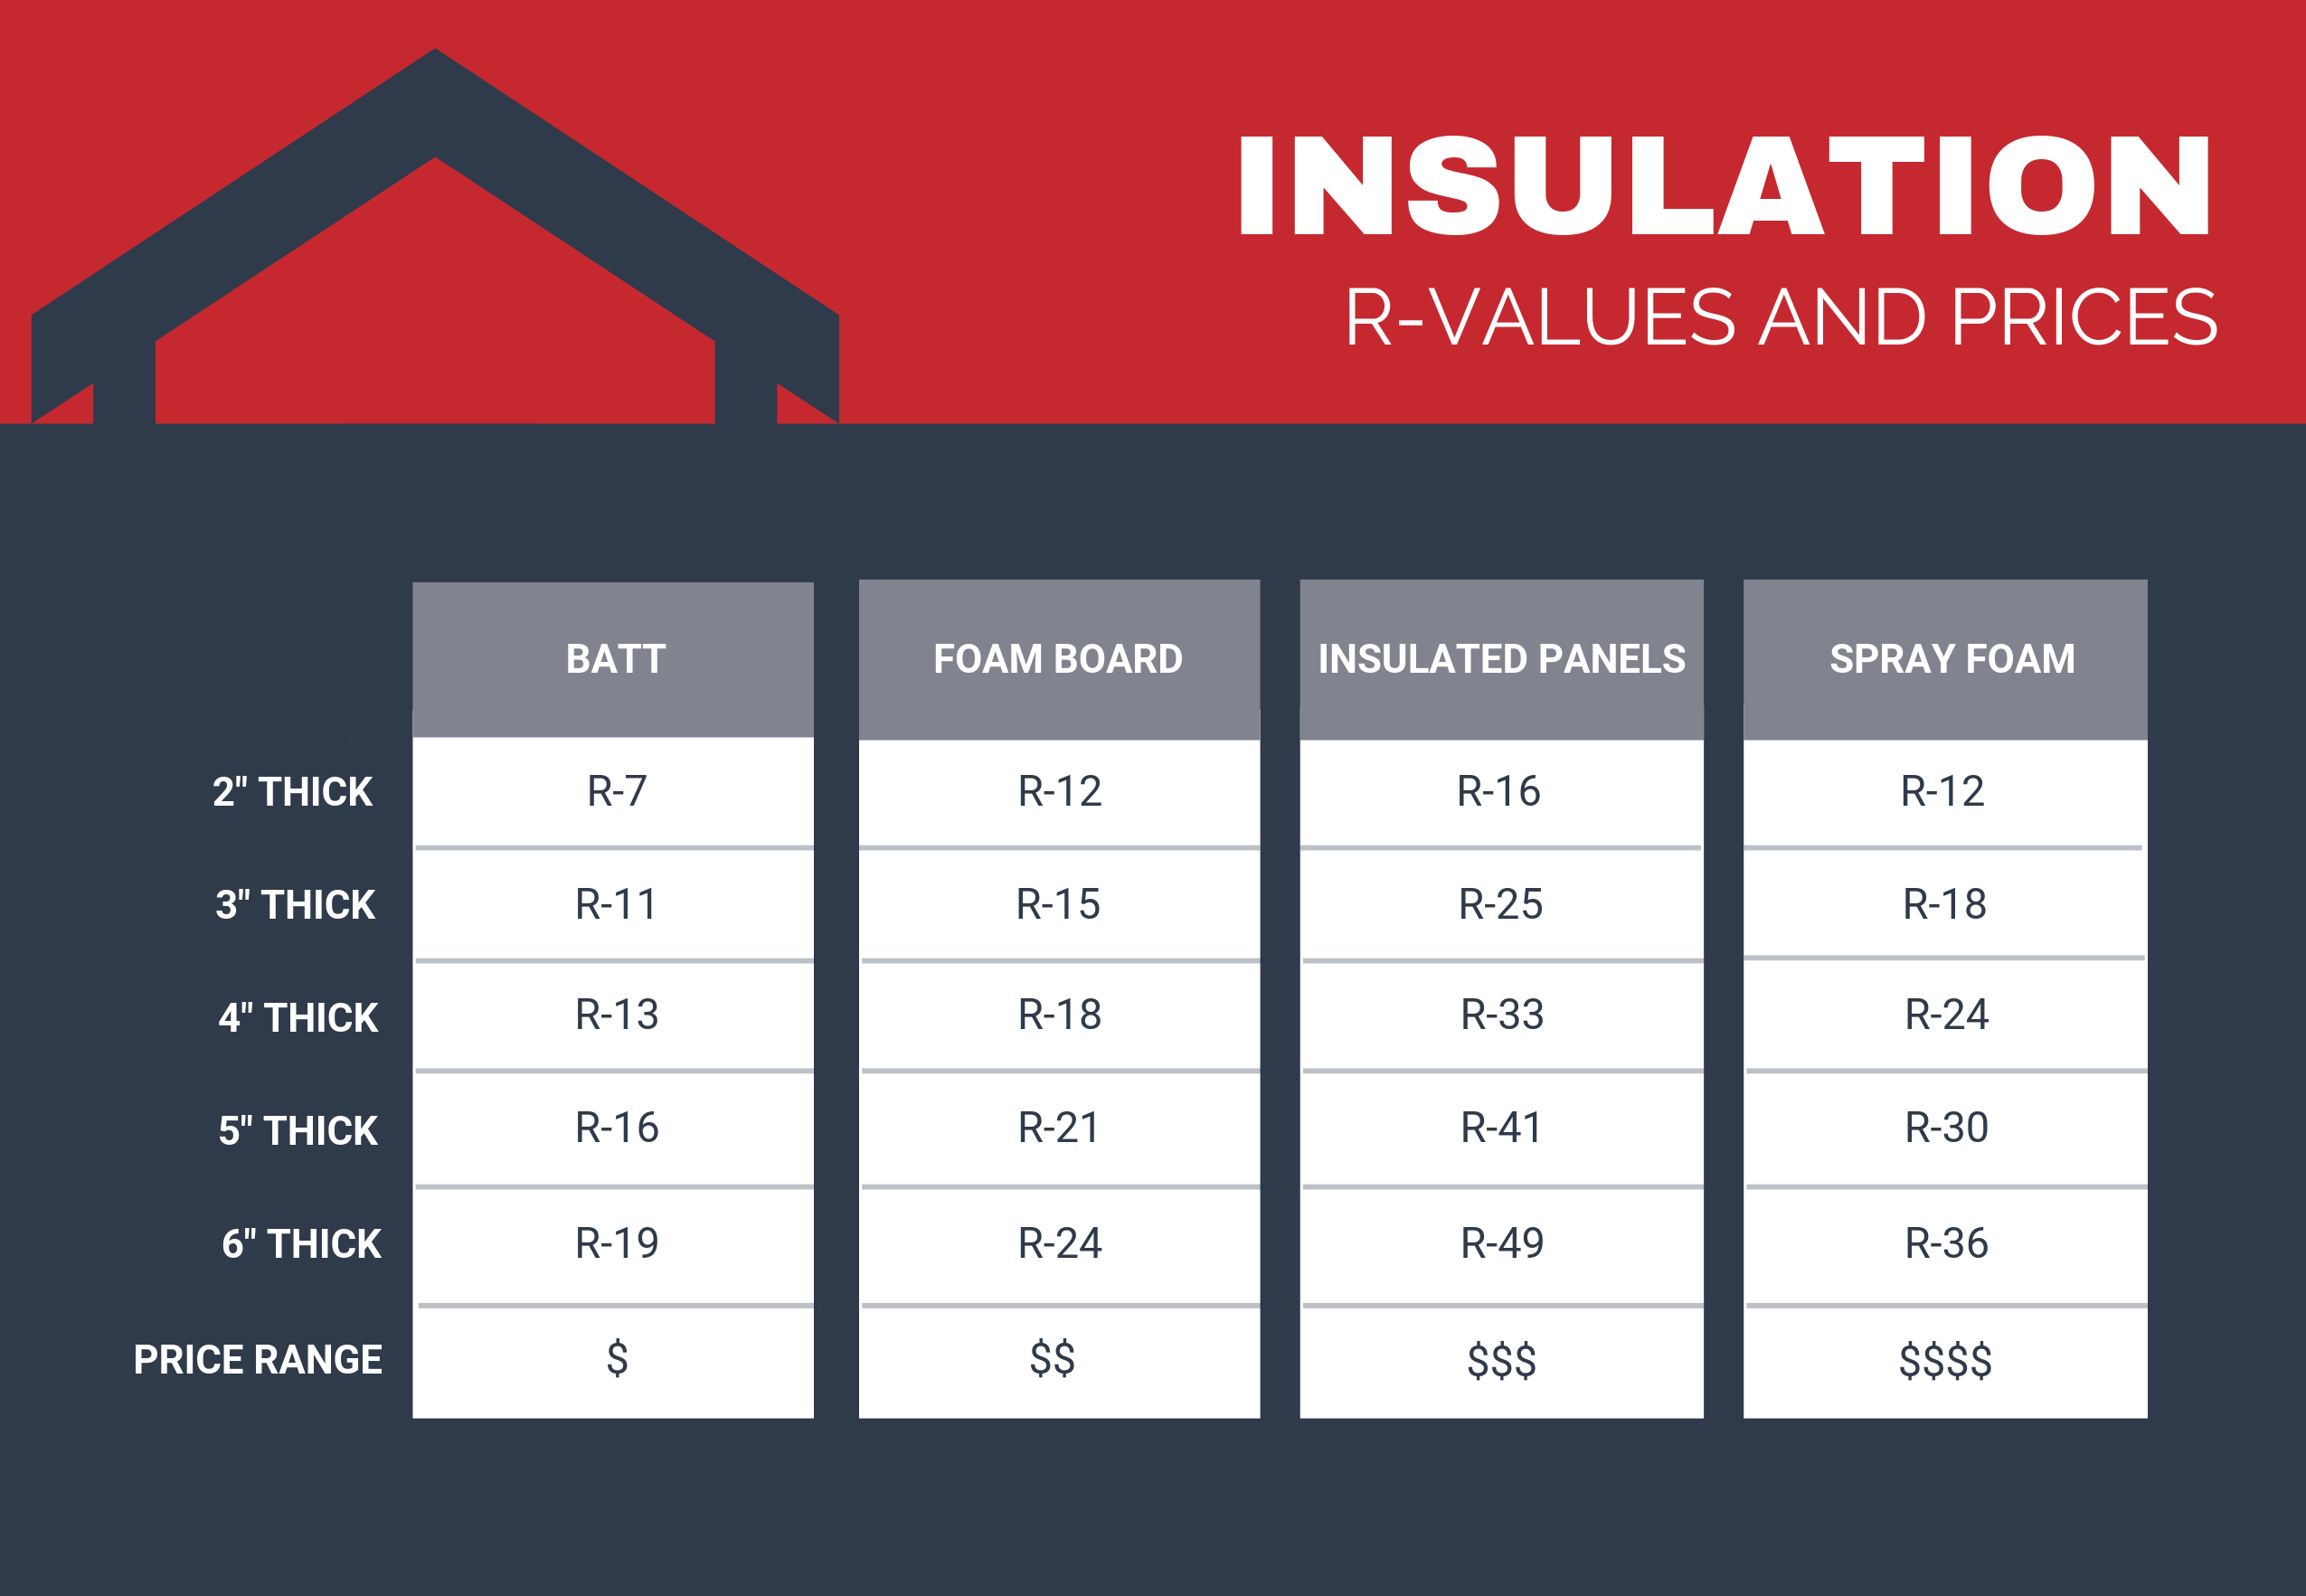 Metal Building Insulation Options And Prices Metal Building Insulation Building Insulation Metal Buildings